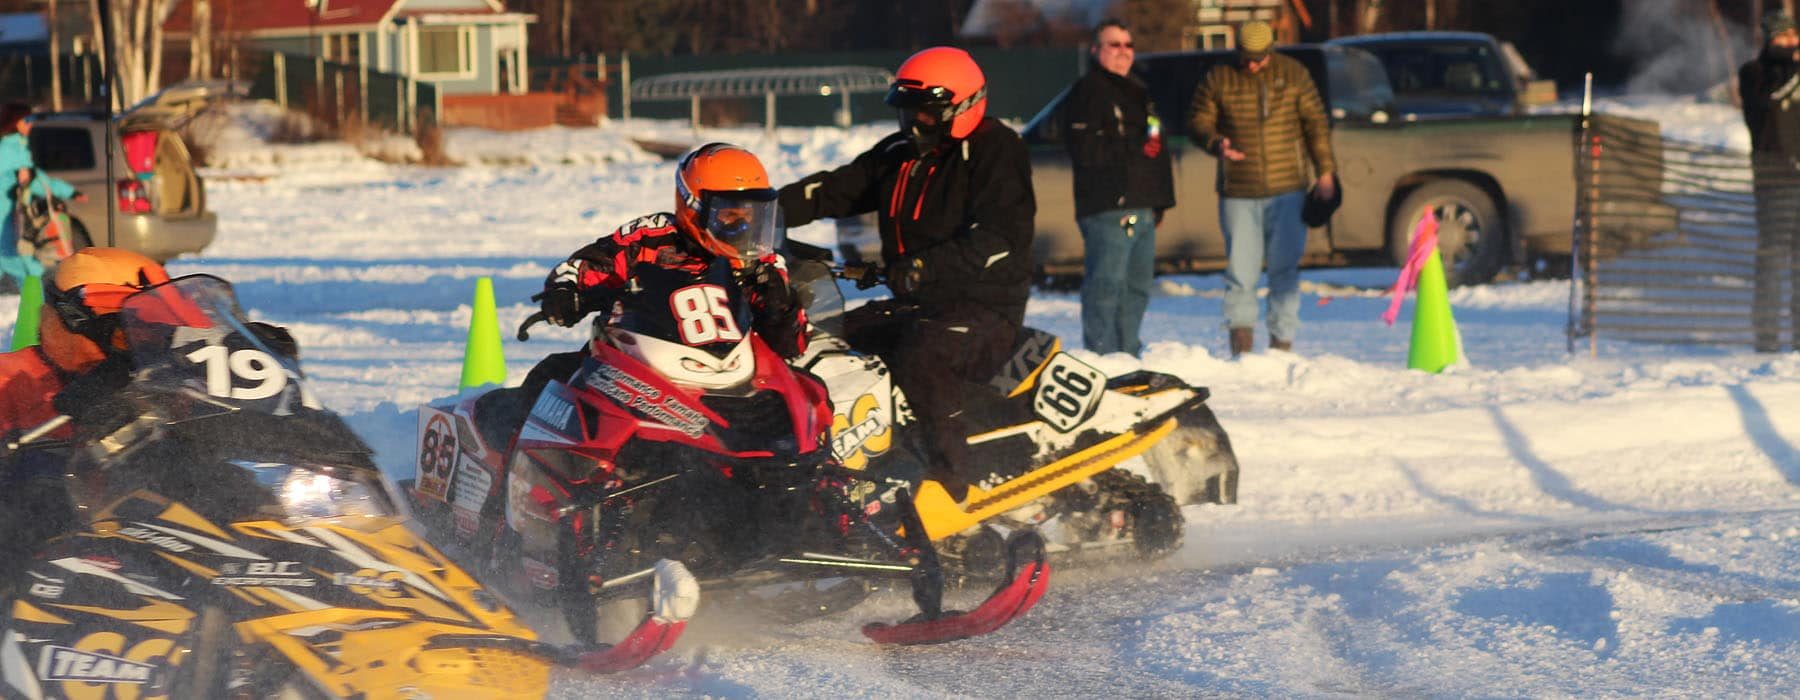 AMMC-Racing-by-Snowmachine-Racing-by-Roberta-Sampson-2